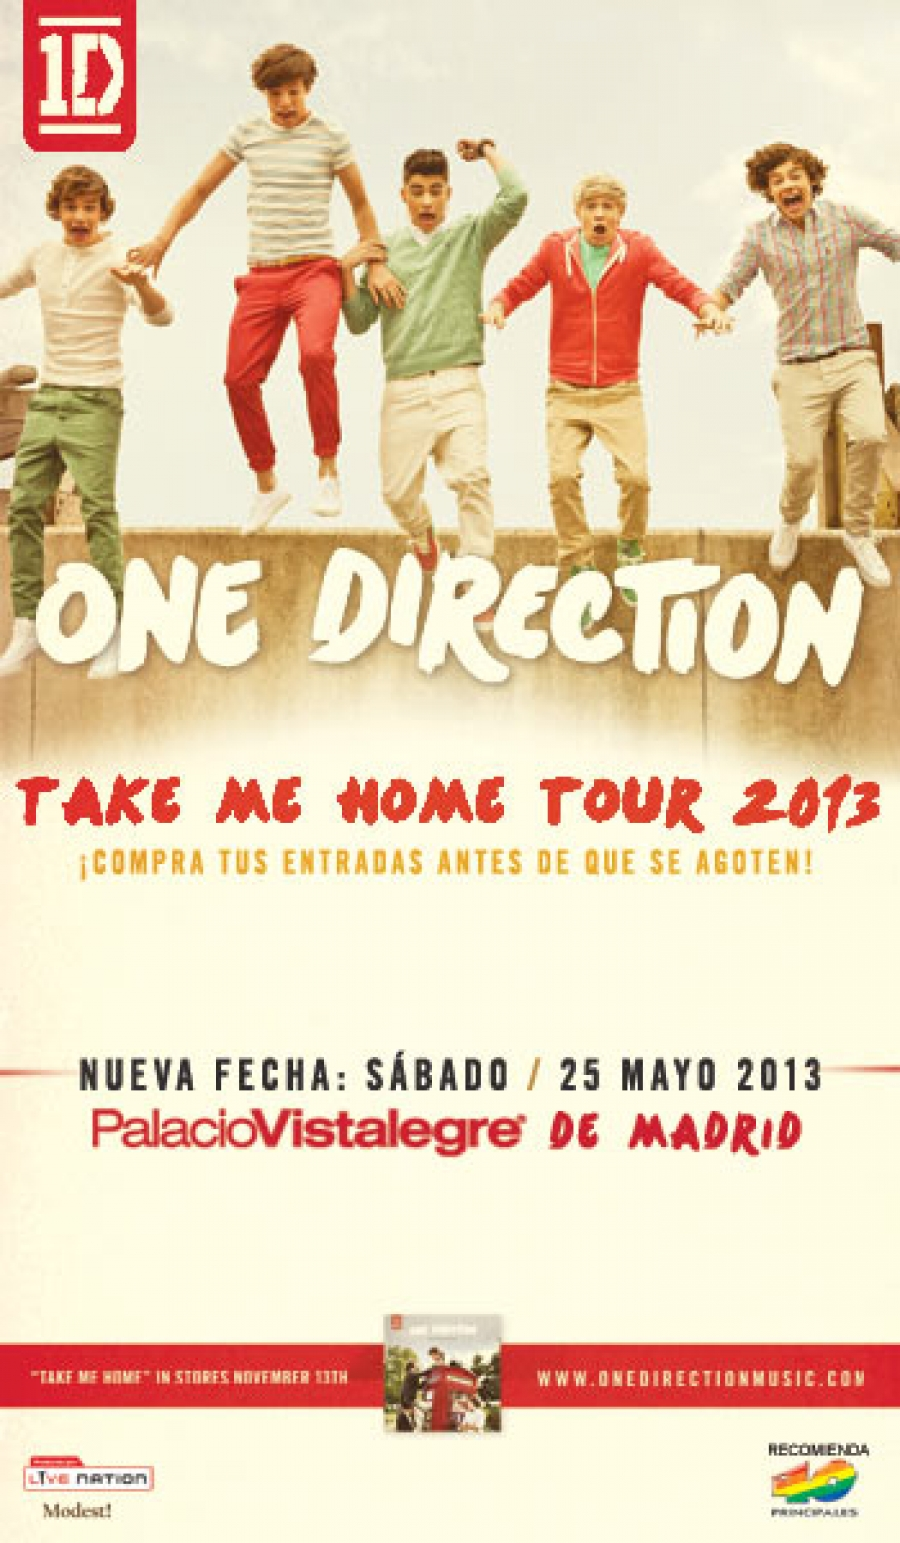 One Direction arrasará Vistalegre esta noche